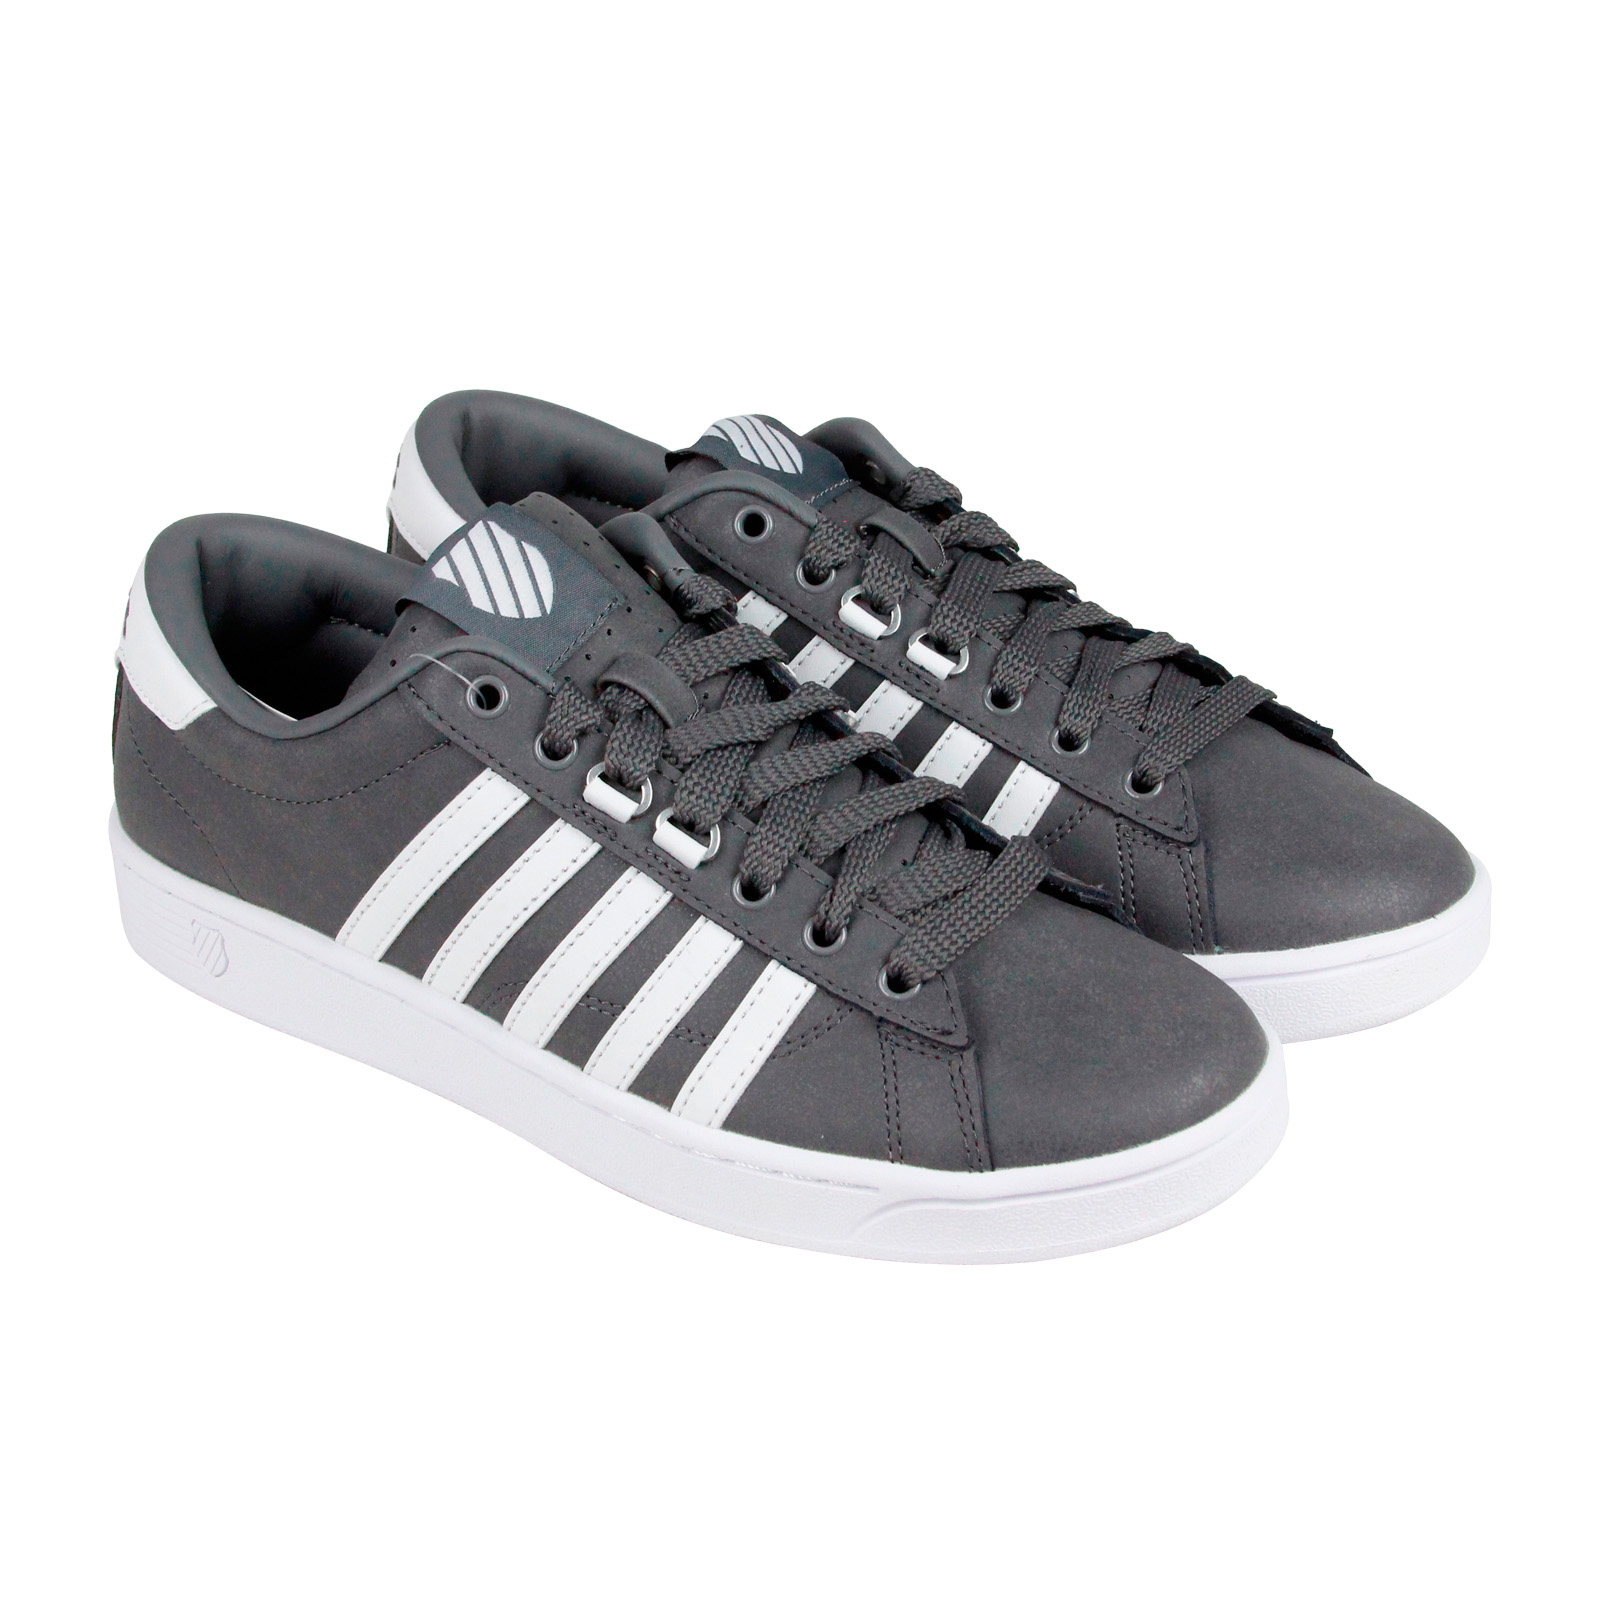 K-Swiss Hoke C CMF Mens Grey Leather Lace Up Sneakers Shoes by K-Swiss